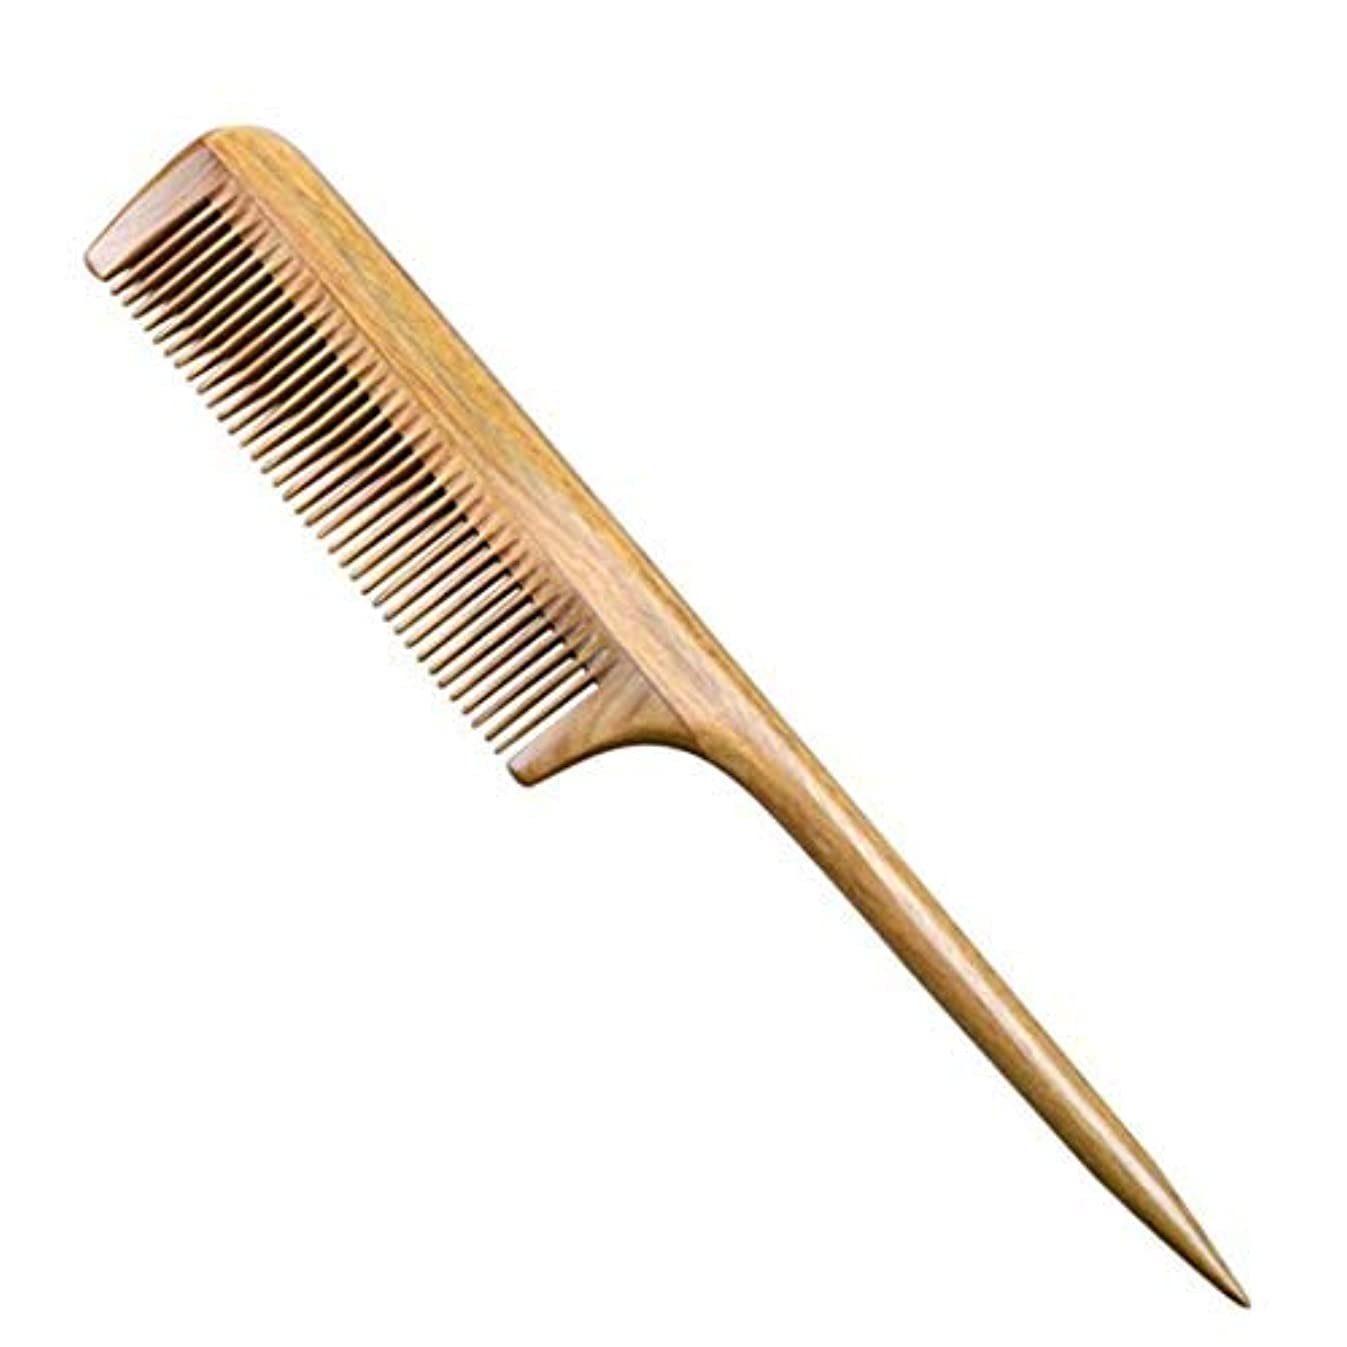 地域のブル噂Rat Tail Hair Comb - Fine Tooth Natural Green Sandalwood Combs with Teasing Tail Handle - No Static Wooden Comb...